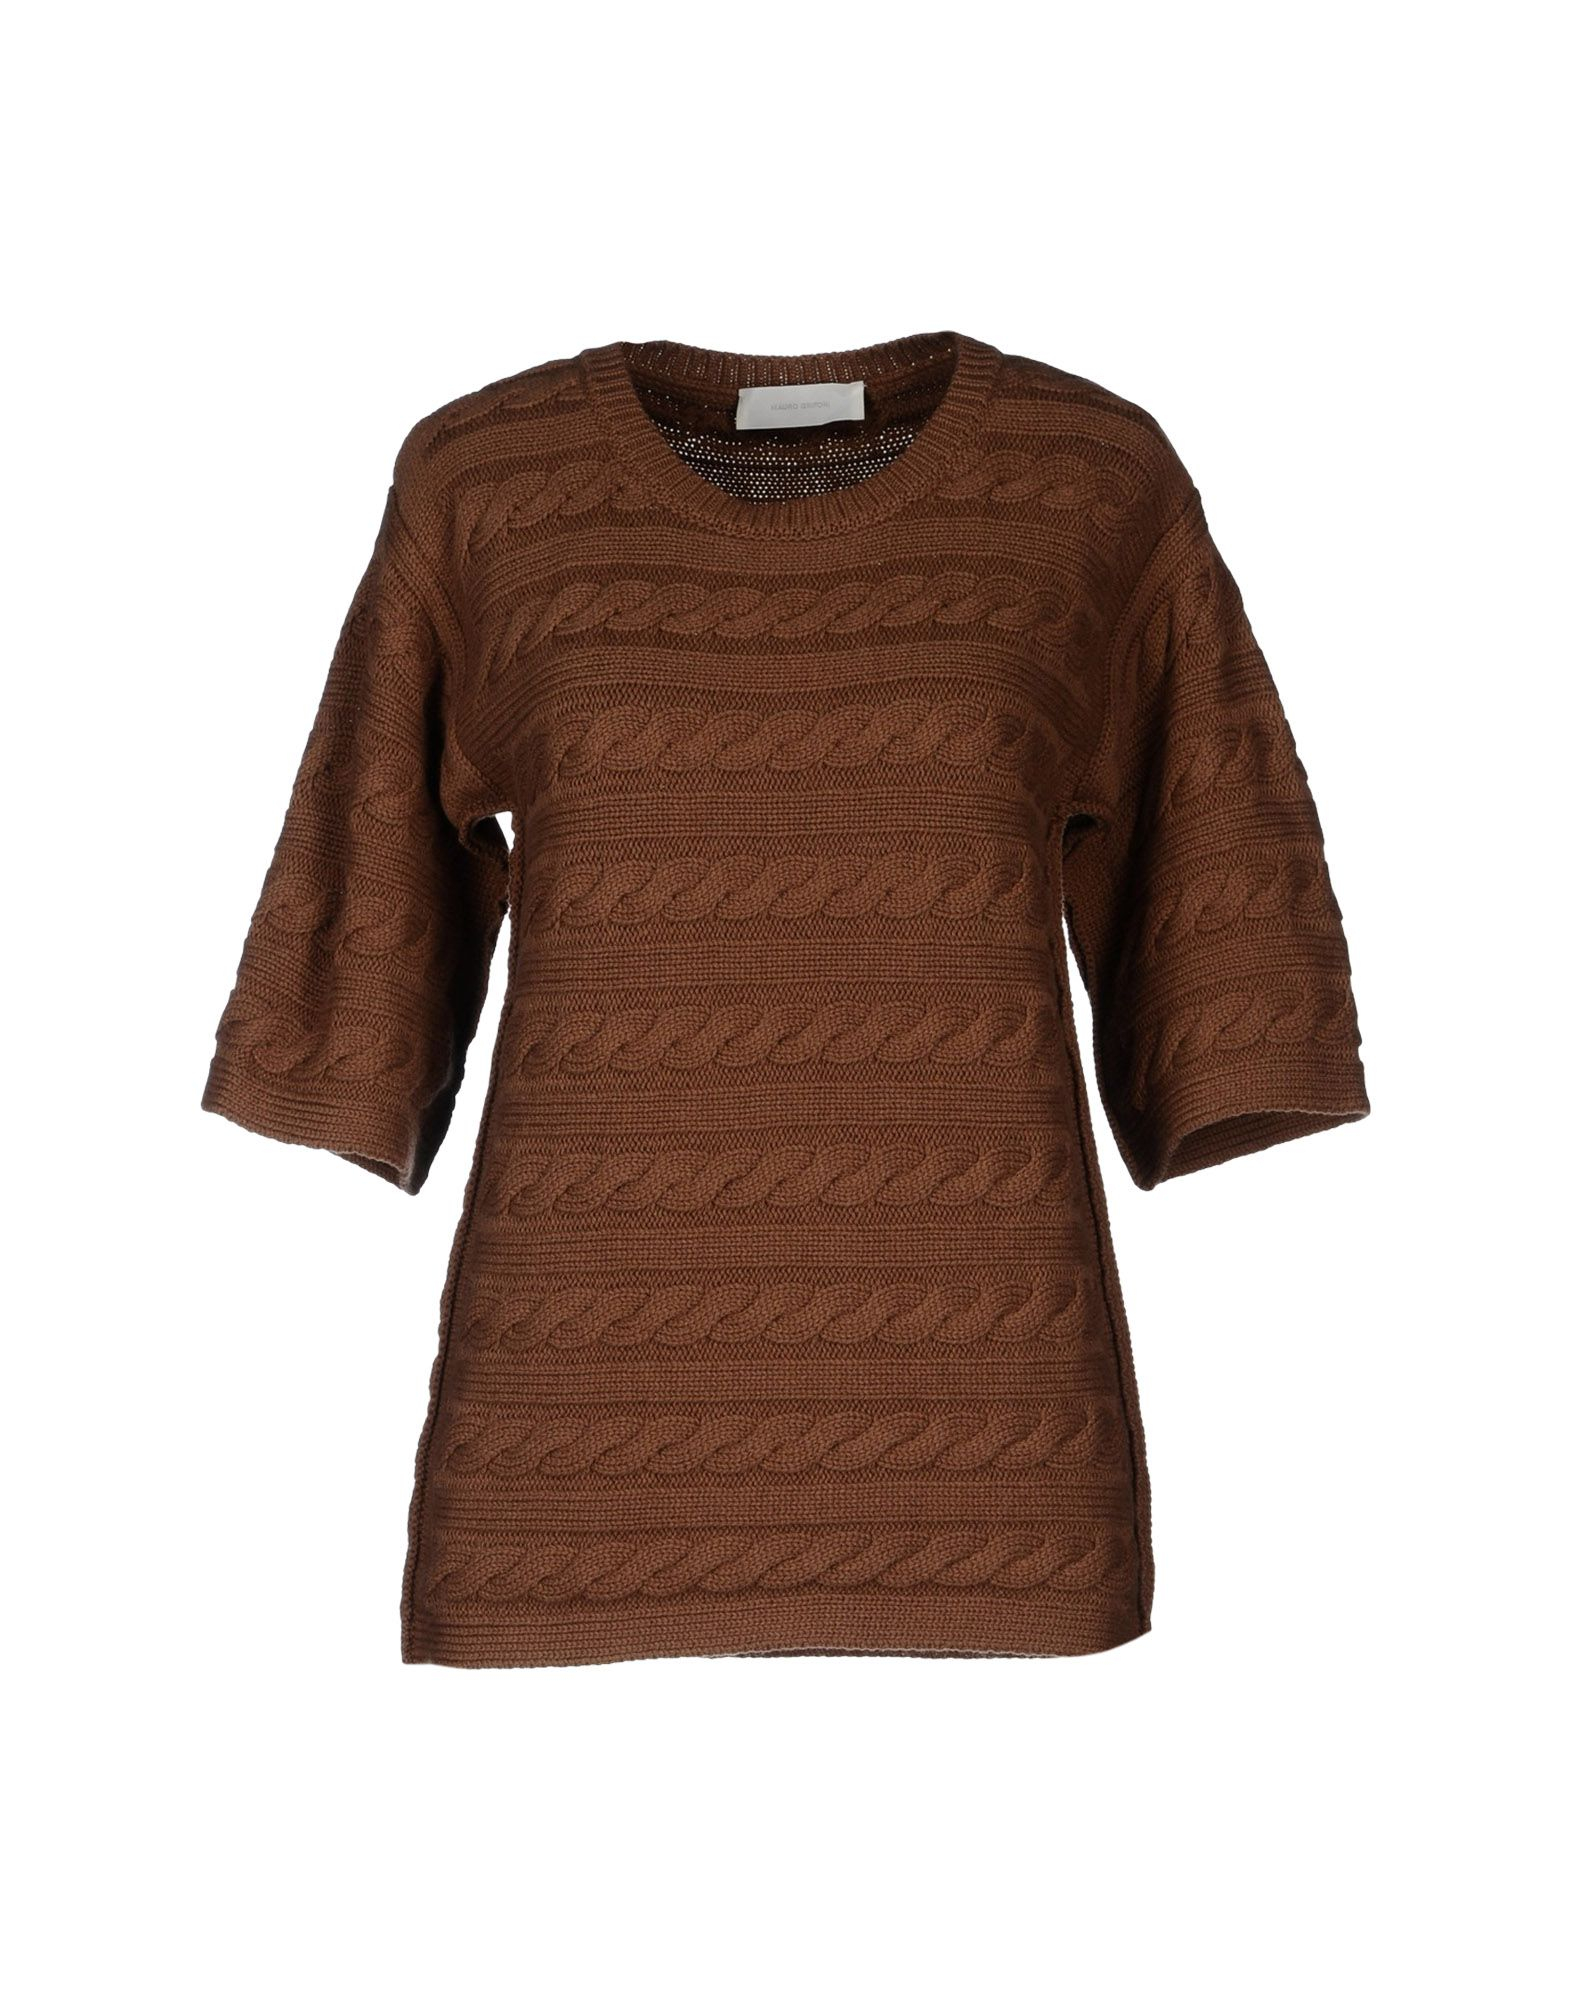 Enjoy free shipping and easy returns every day at Kohl's. Find great deals on Womens Brown Cardigan Sweaters at Kohl's today!